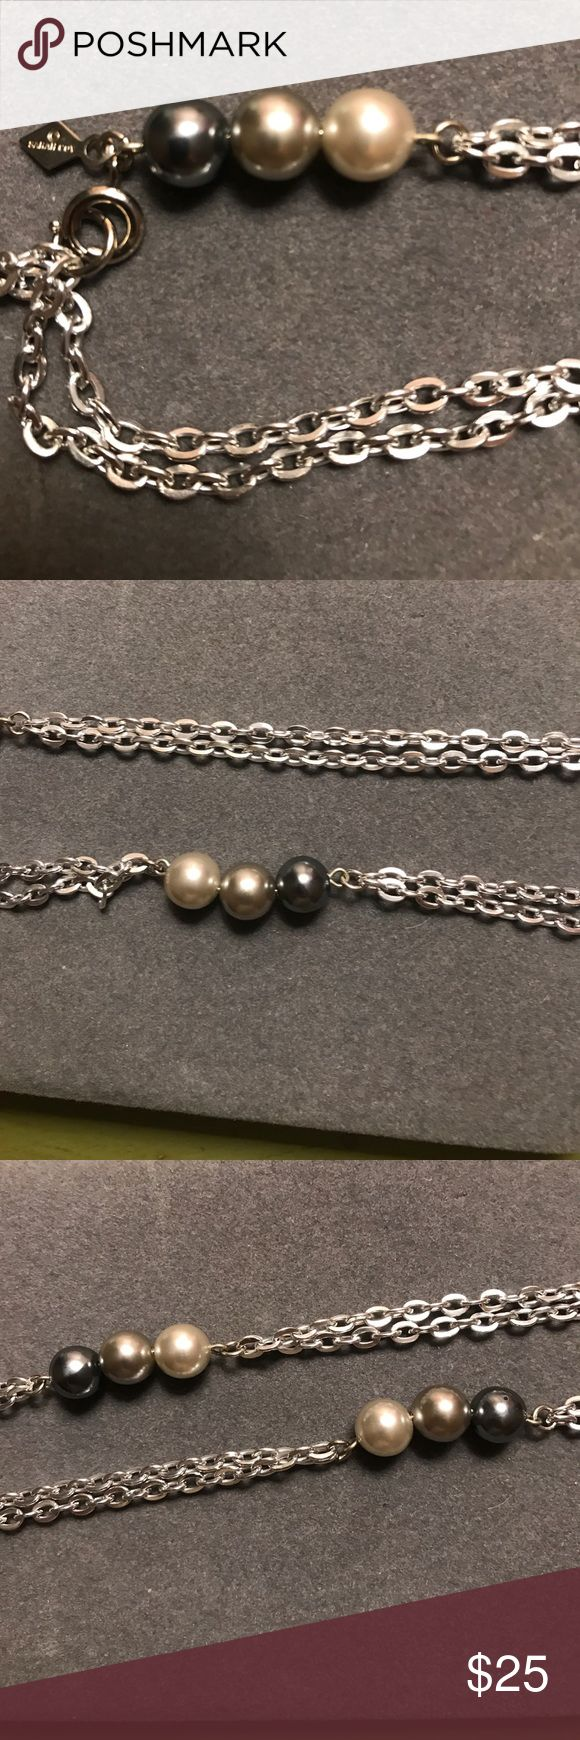 Stamped 1960s sarah coventry necklace Pearls in dark gray light gray and ivory tones on a sparkling silver chain. Stamped tag Sarah Coventry Jewelry Necklaces